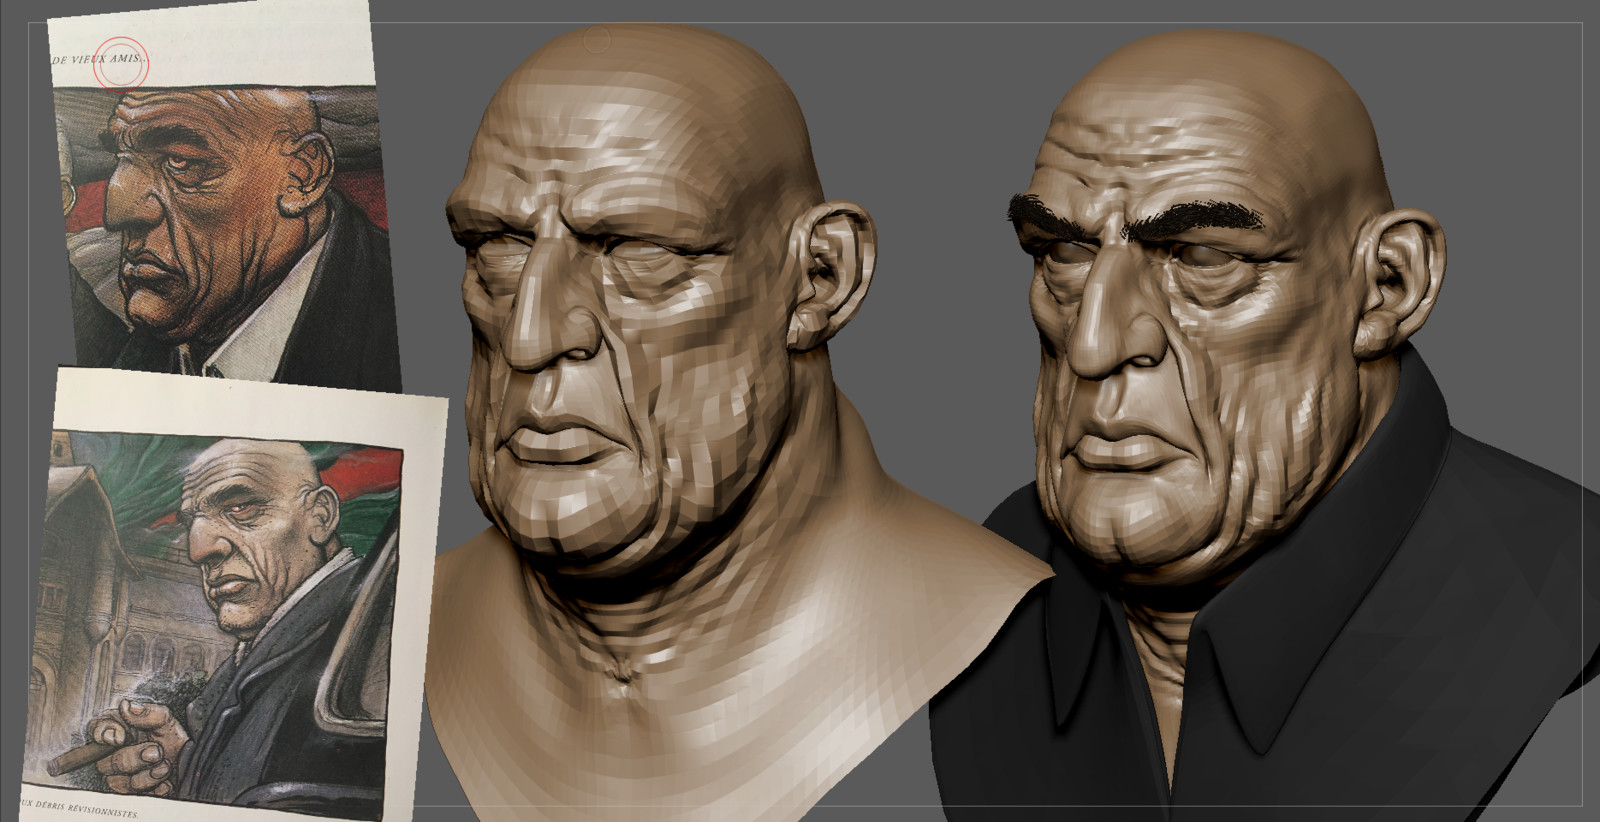 WIp speed sculpt 3 hours